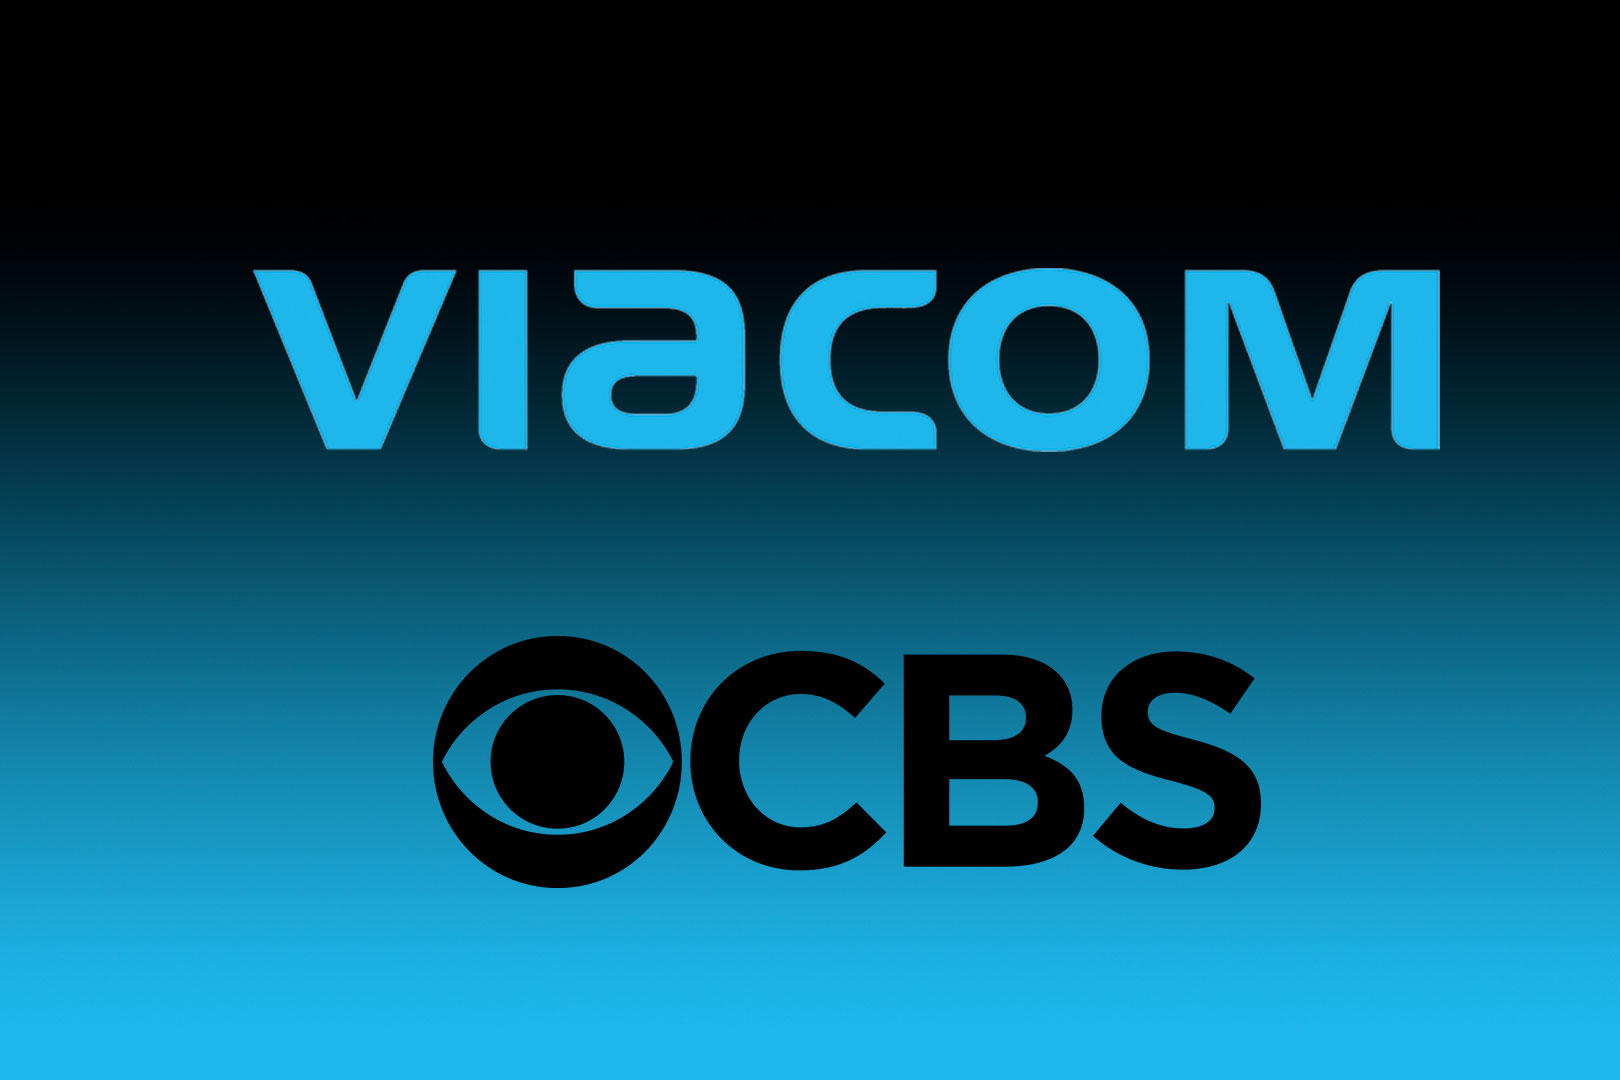 CBS and Viacom are expected to announce a merger soon